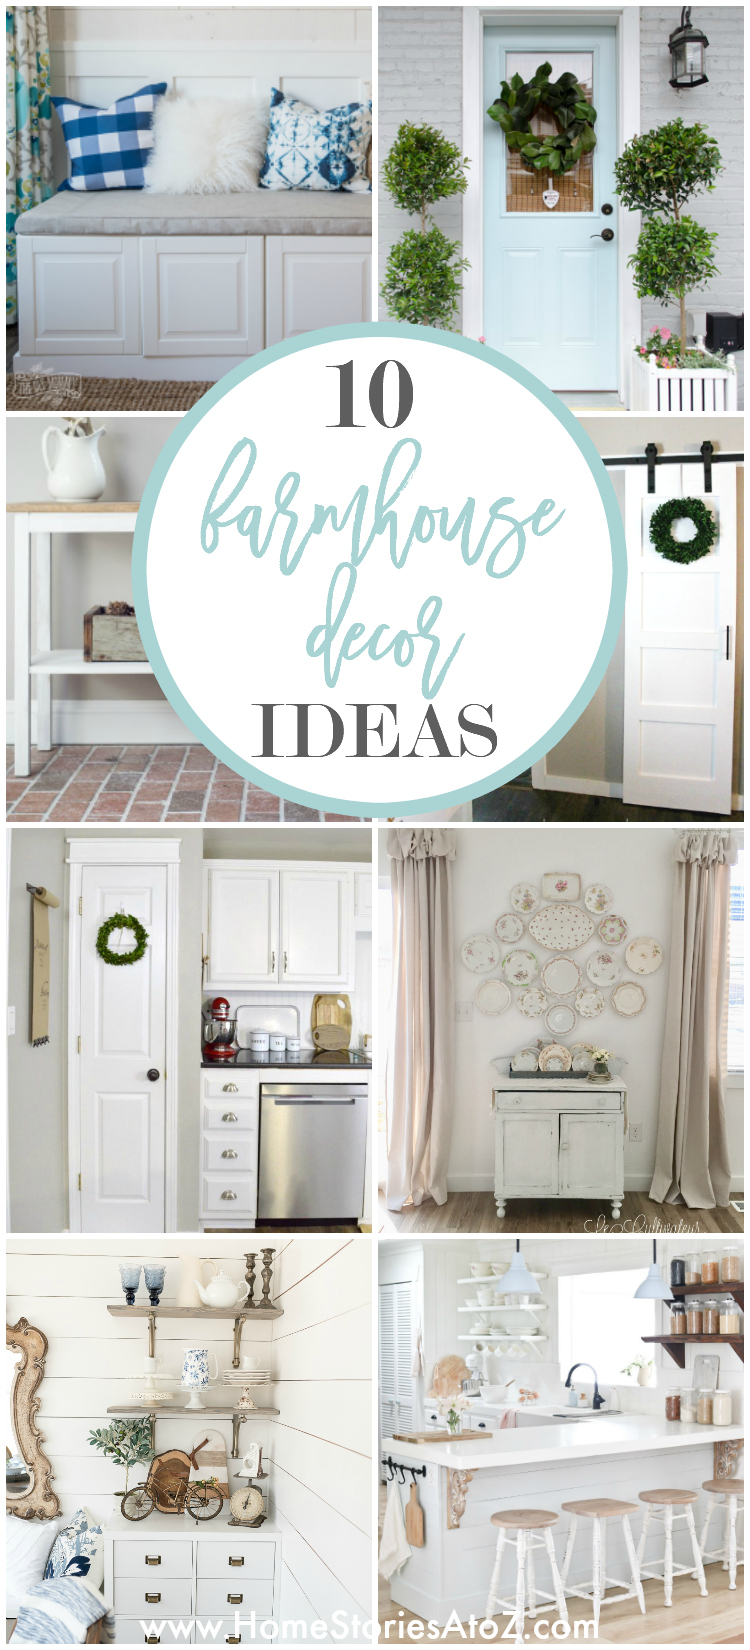 10 Simple Ways to Create Farmhouse Charm in Your Home